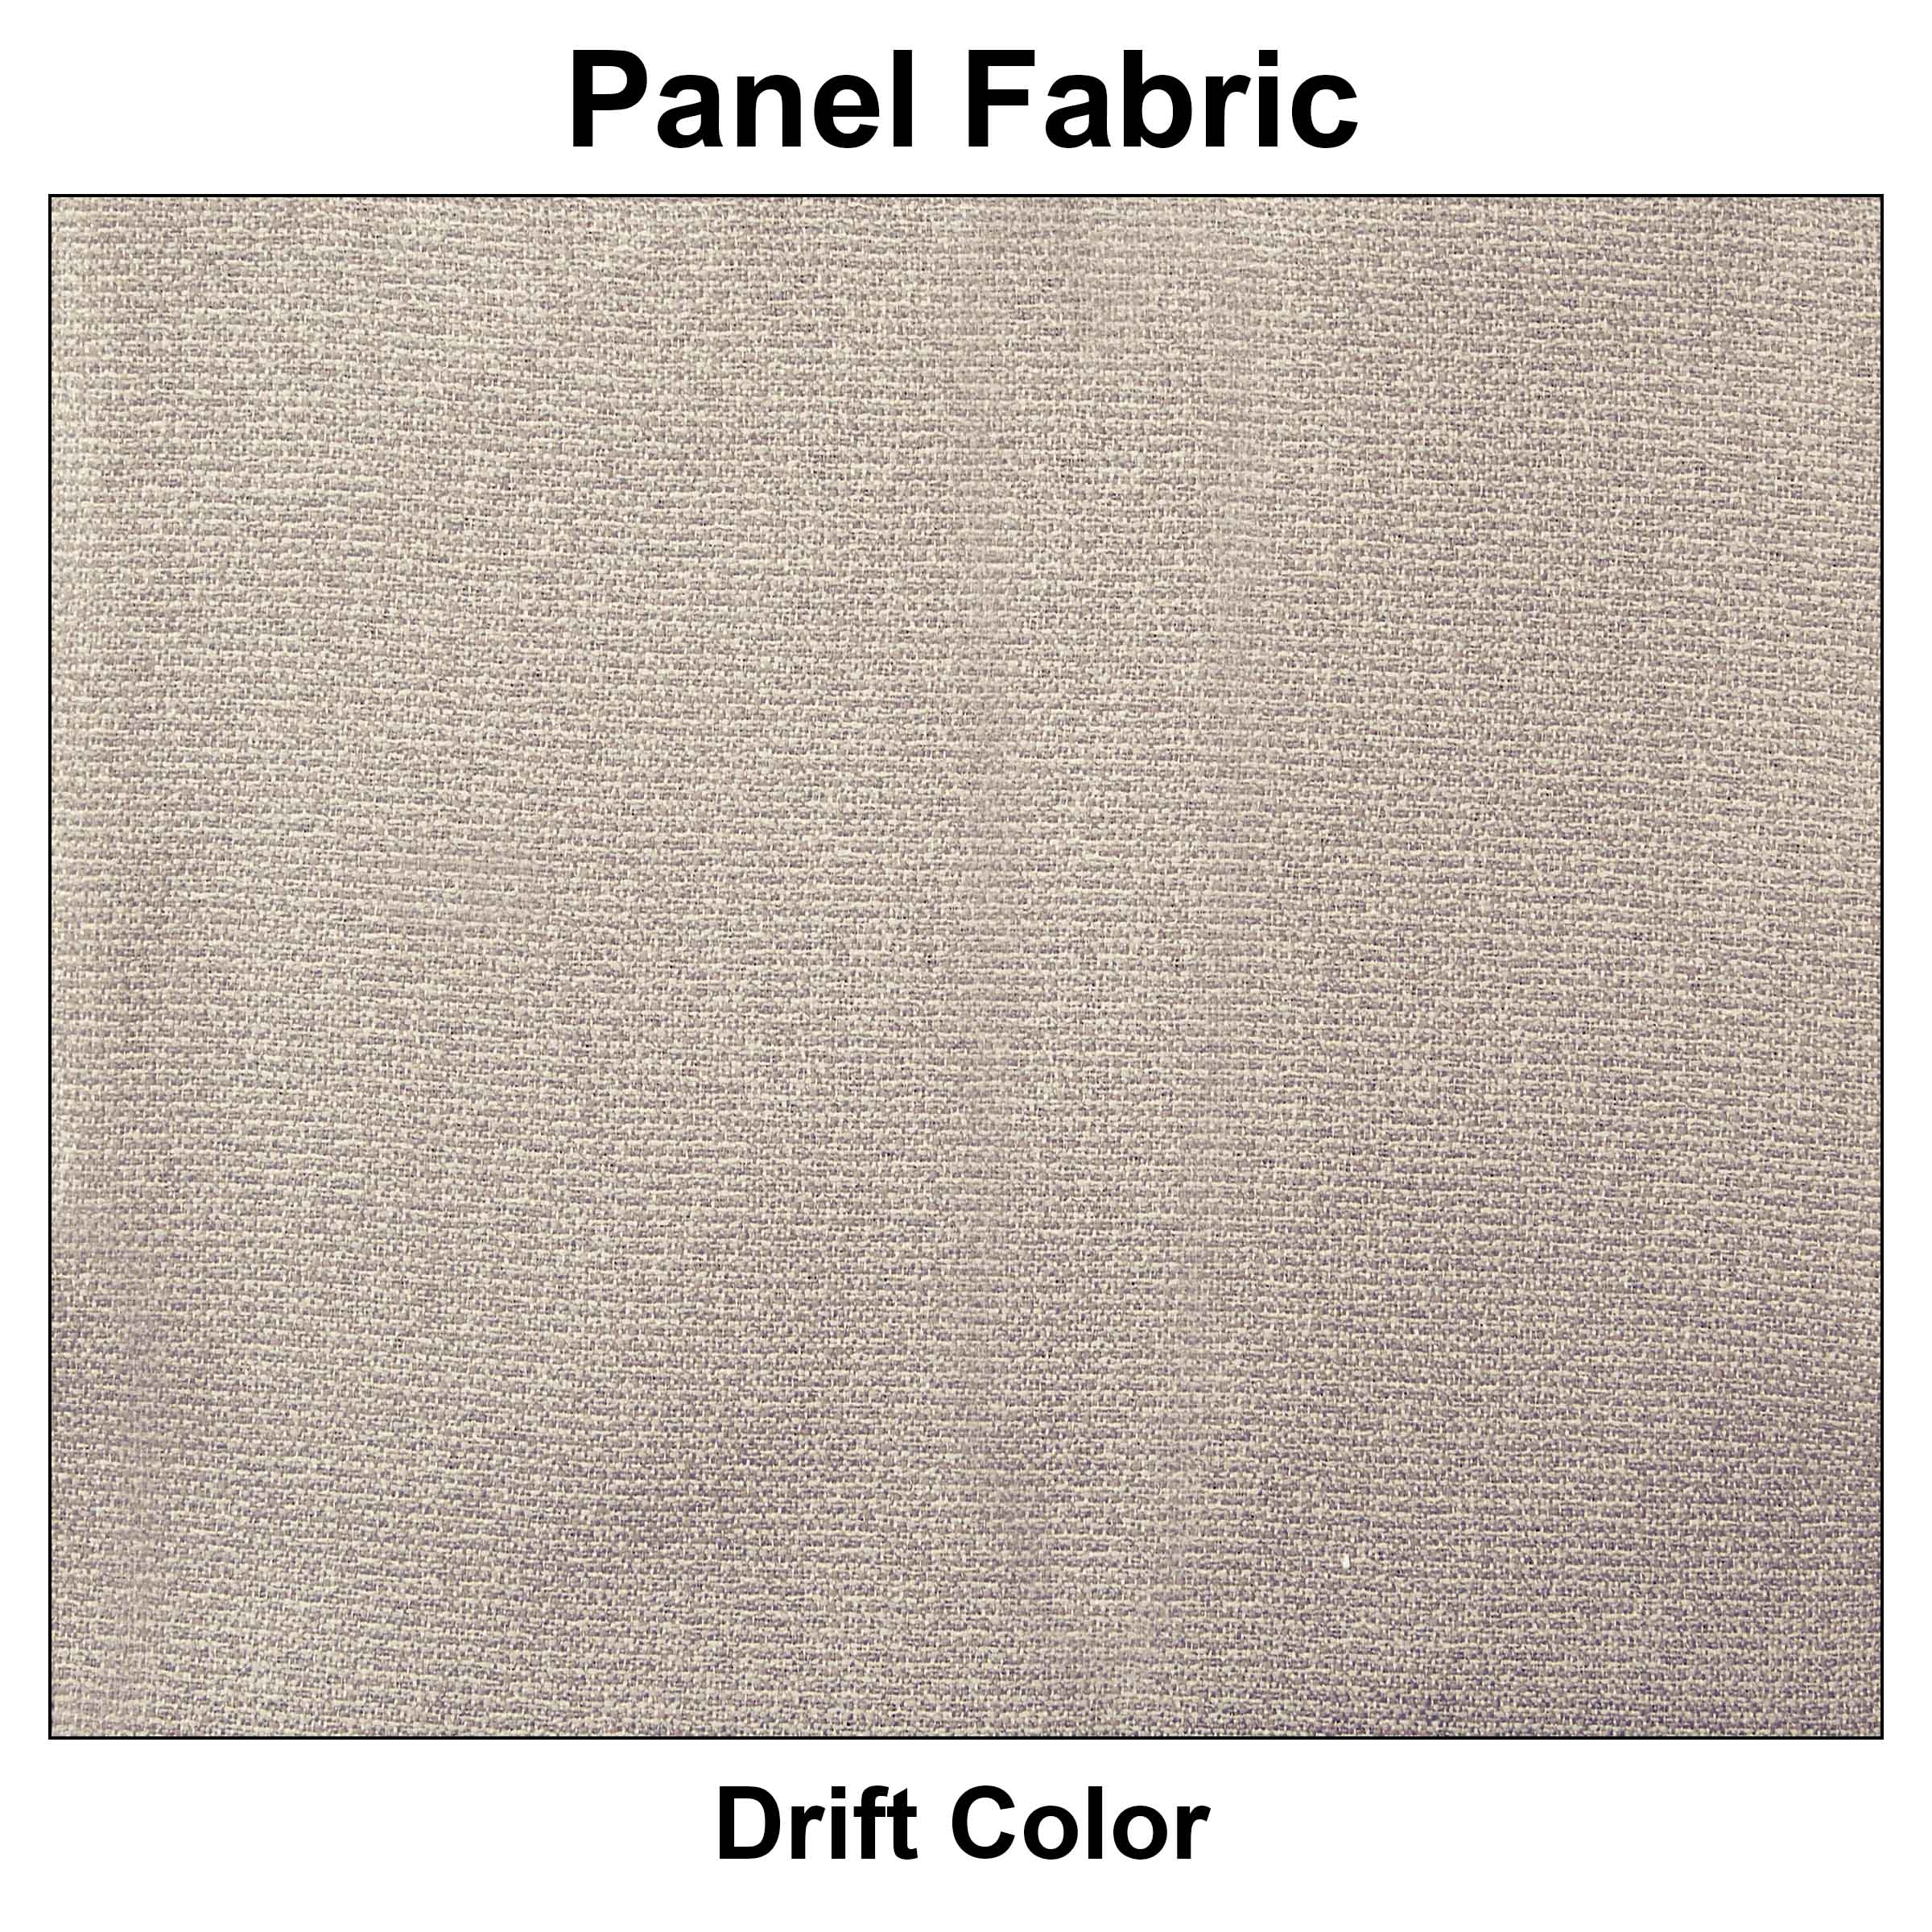 Commercial office furniture fabric